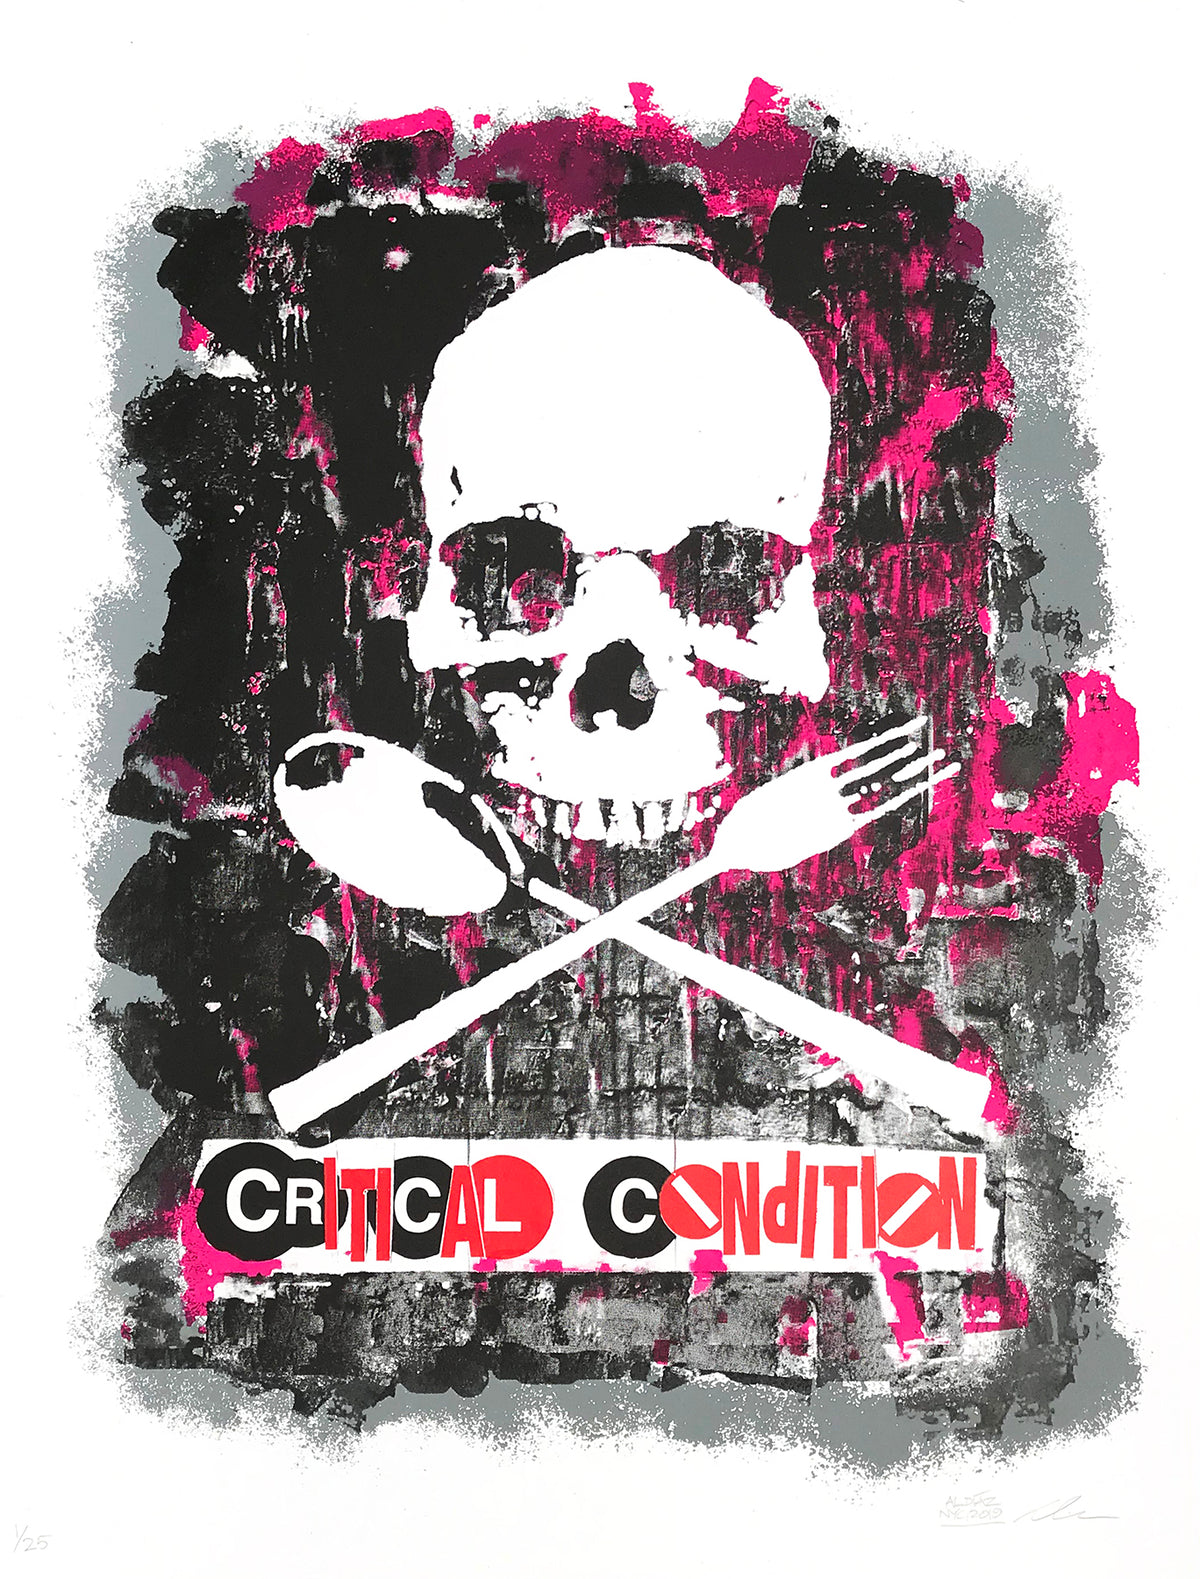 "Al Diaz and lifeafterdeath ""Critical Condition"" - 4 Color Screen Print, Limited Edition of 25 - 19 x 25"""